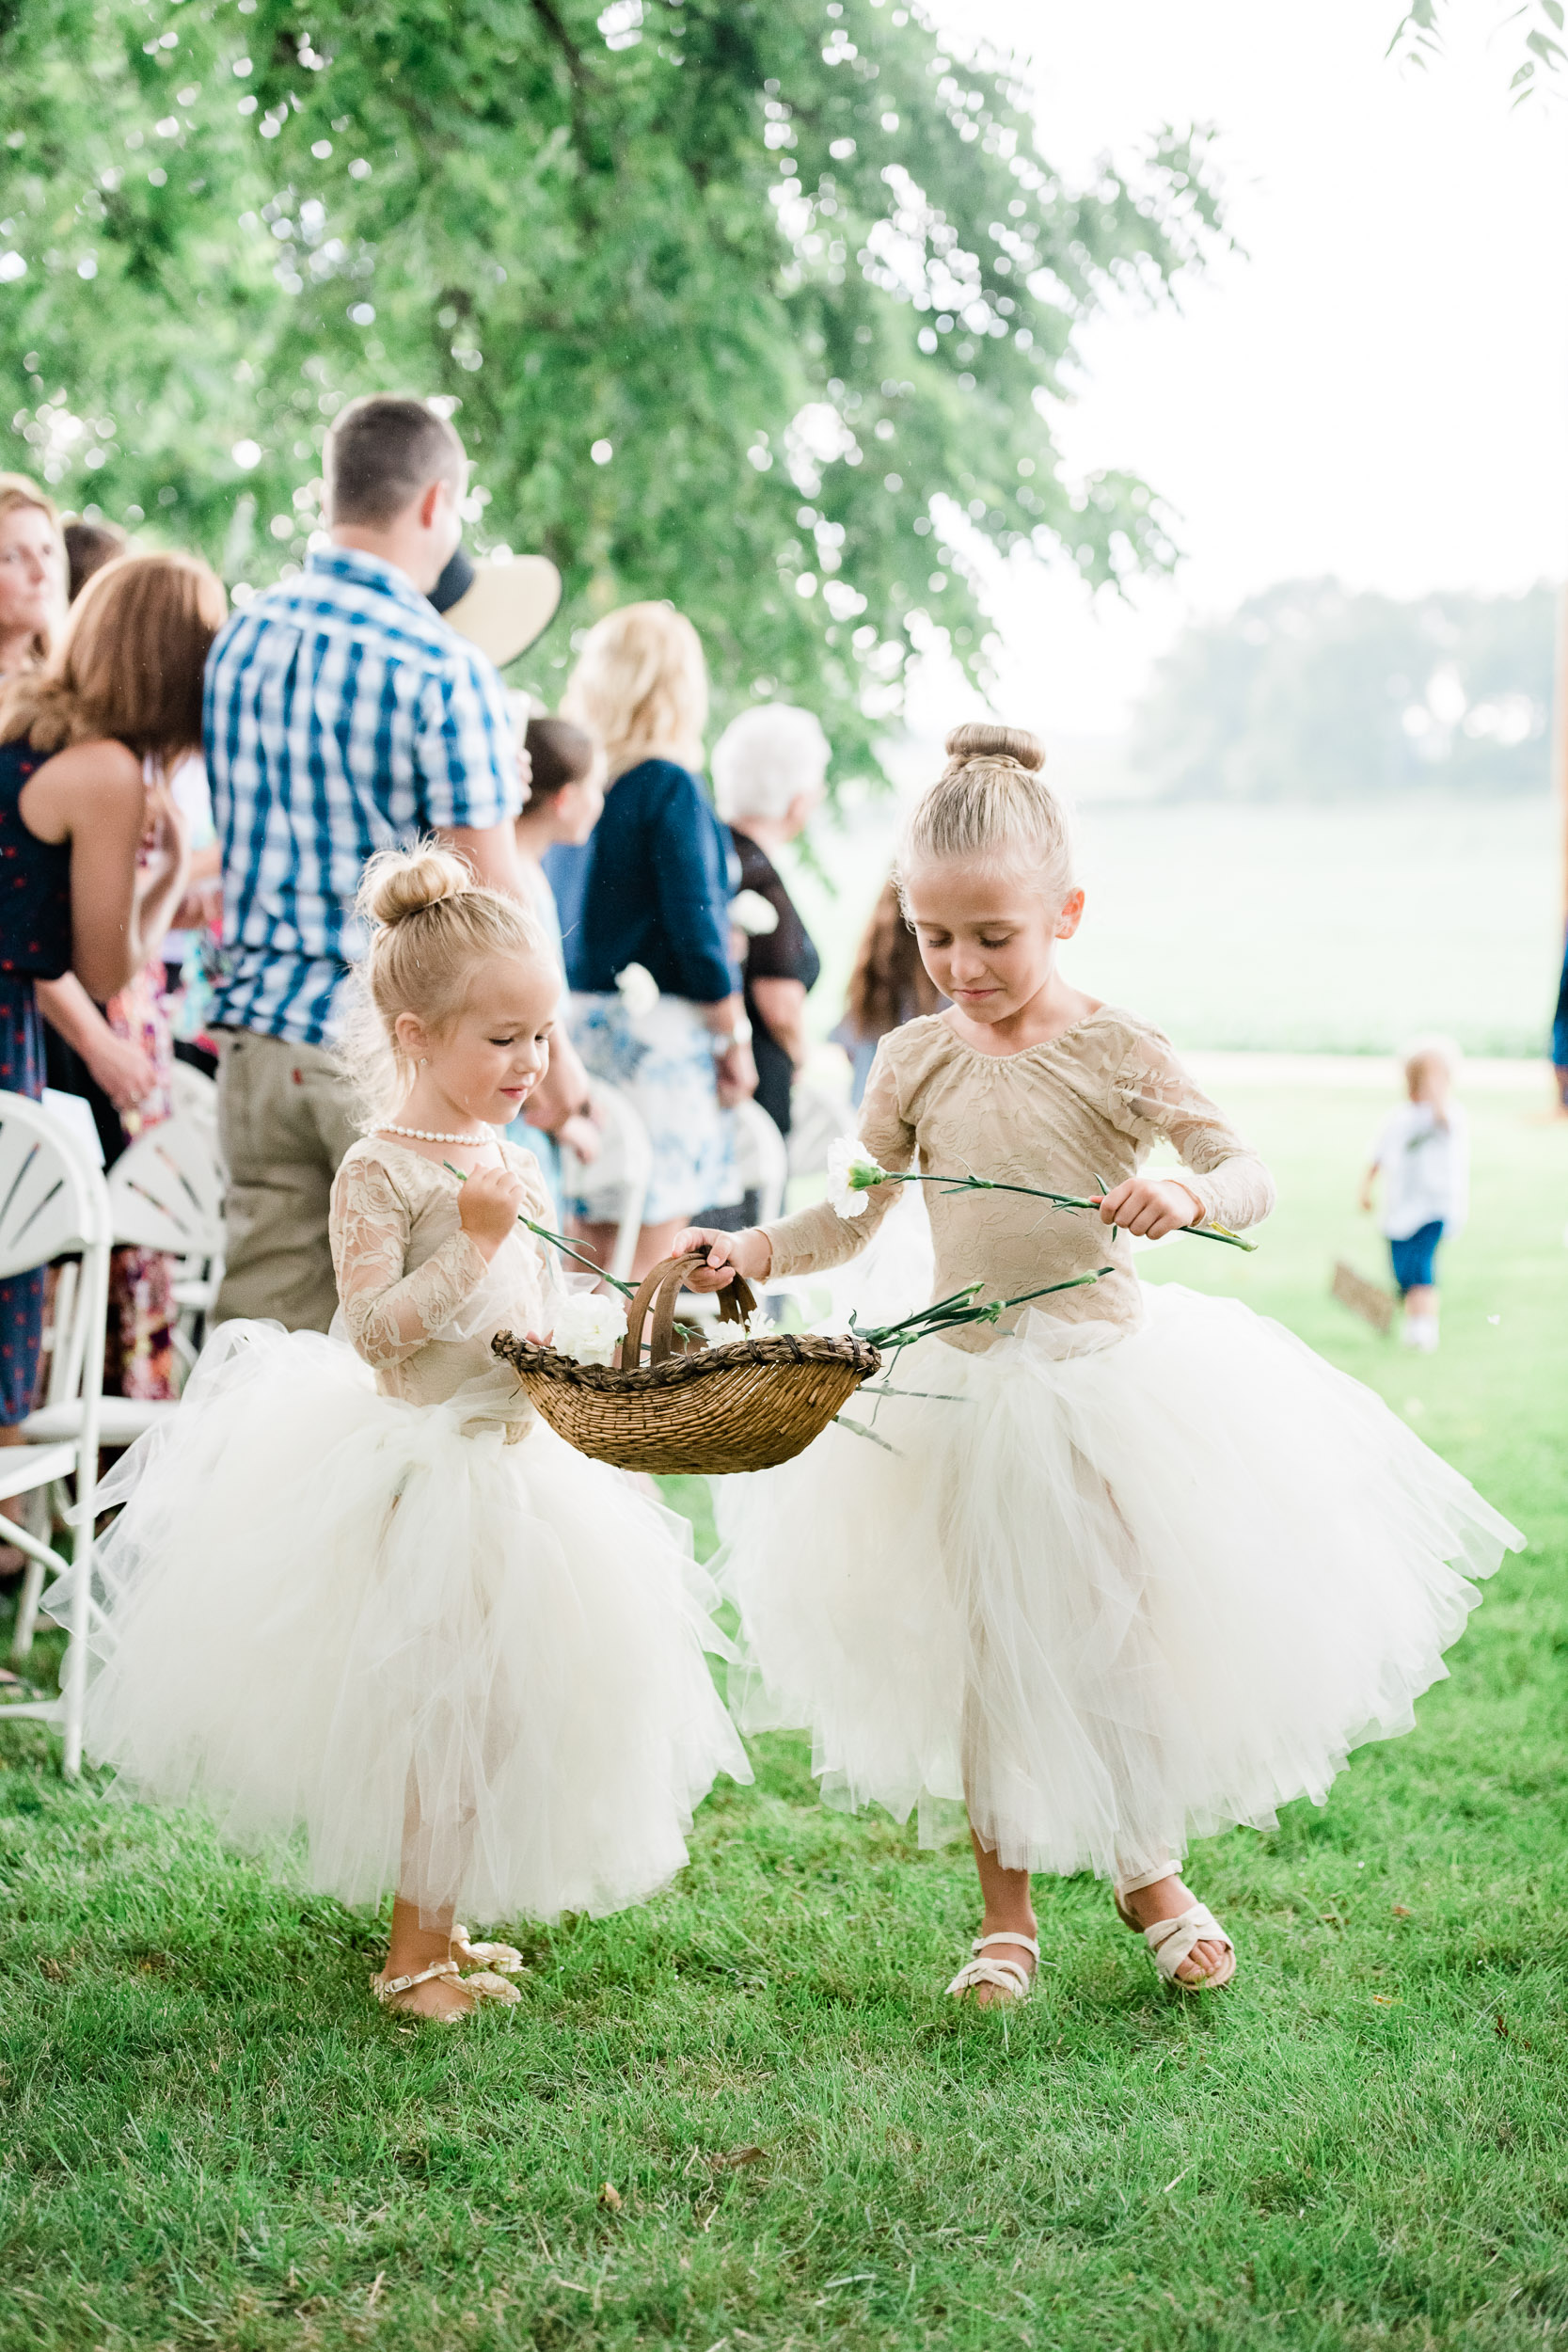 Flower girls putting petals out